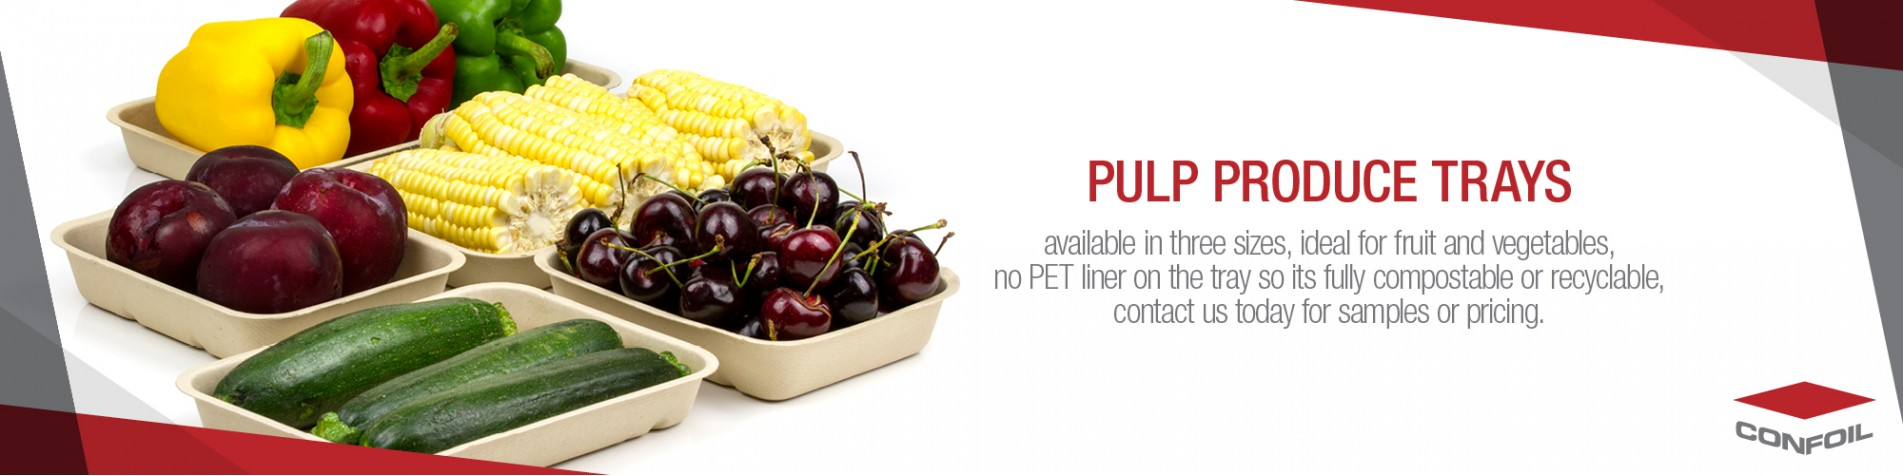 Pulp produce trays